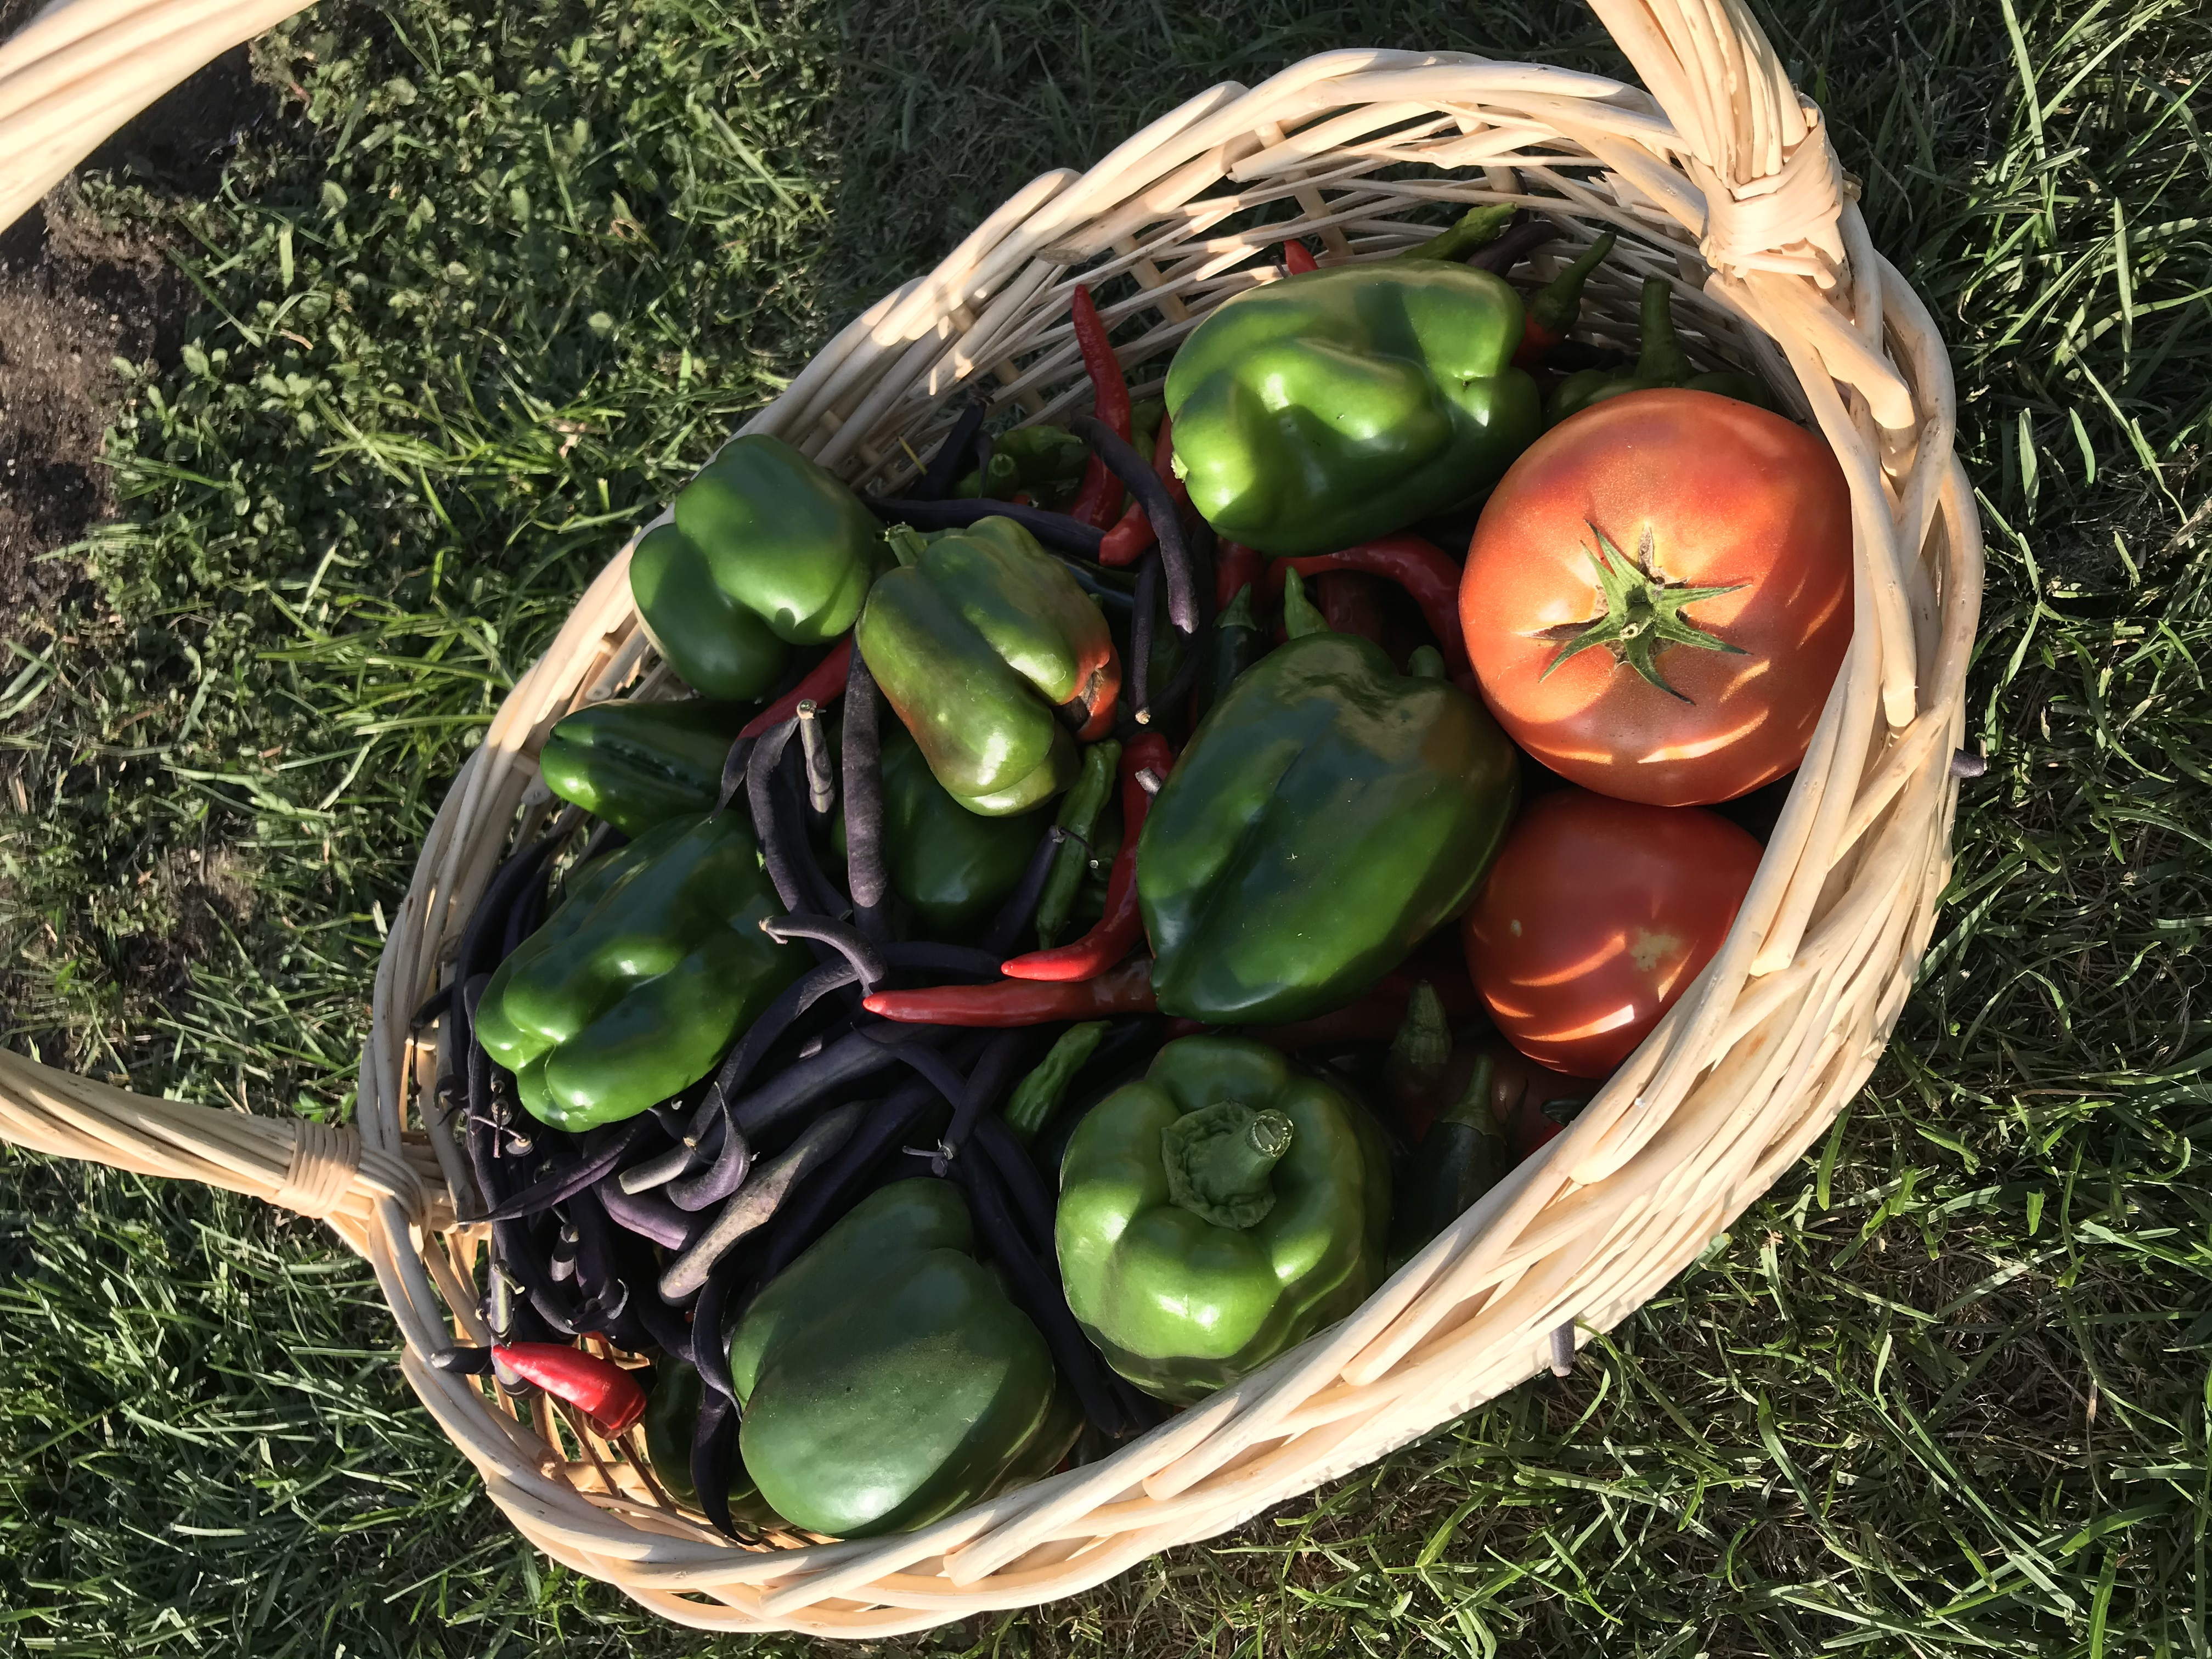 Discovery Garden produce harvested for food pantries